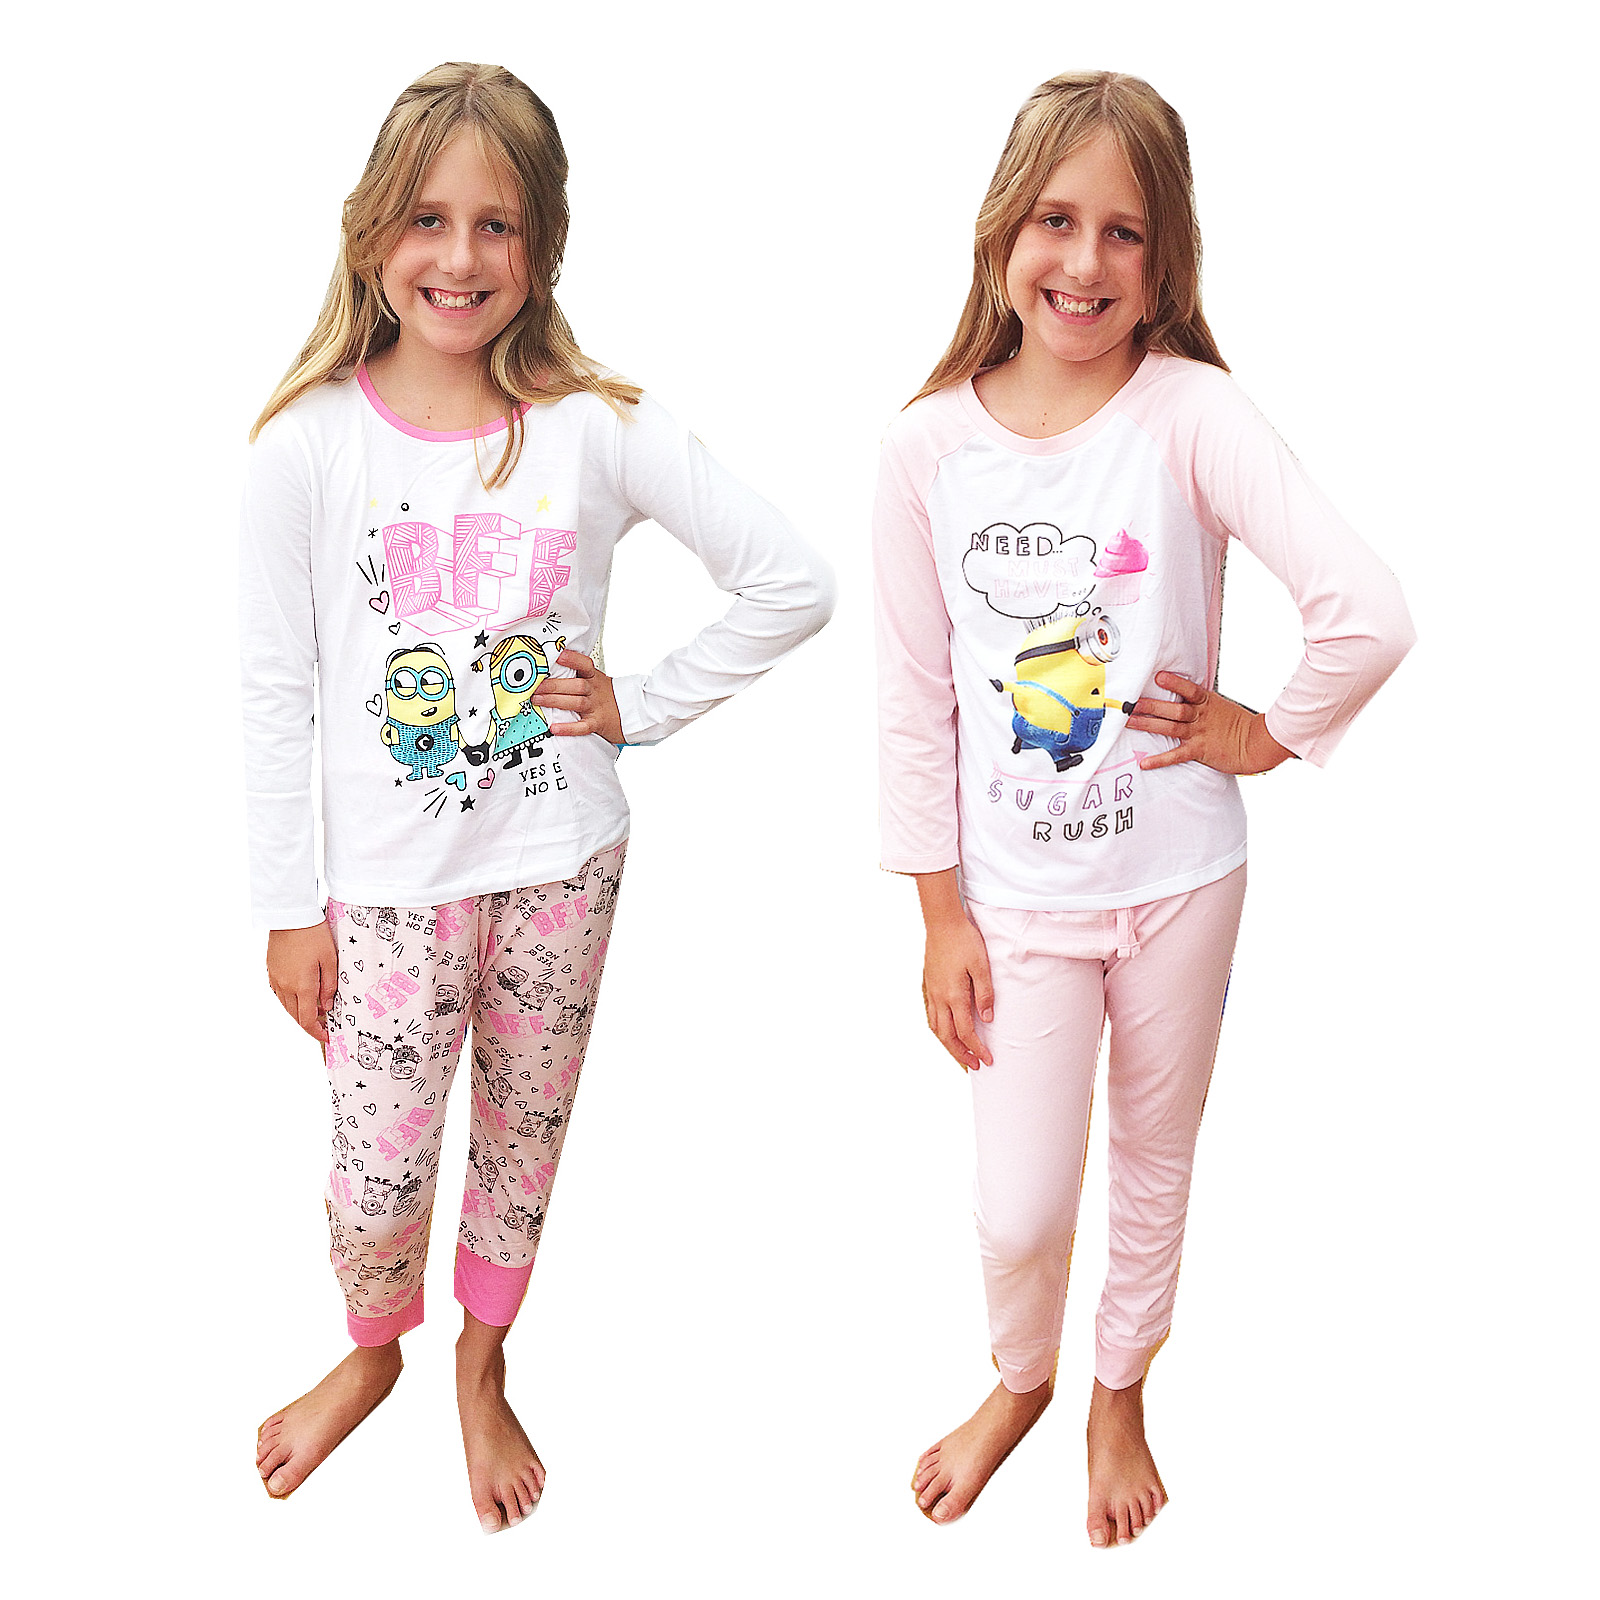 Details about Despicable Me Girls Official Minions Nightwear Kids Sugar  Rush Or BFF Pyjama Set 3f8b2fb90